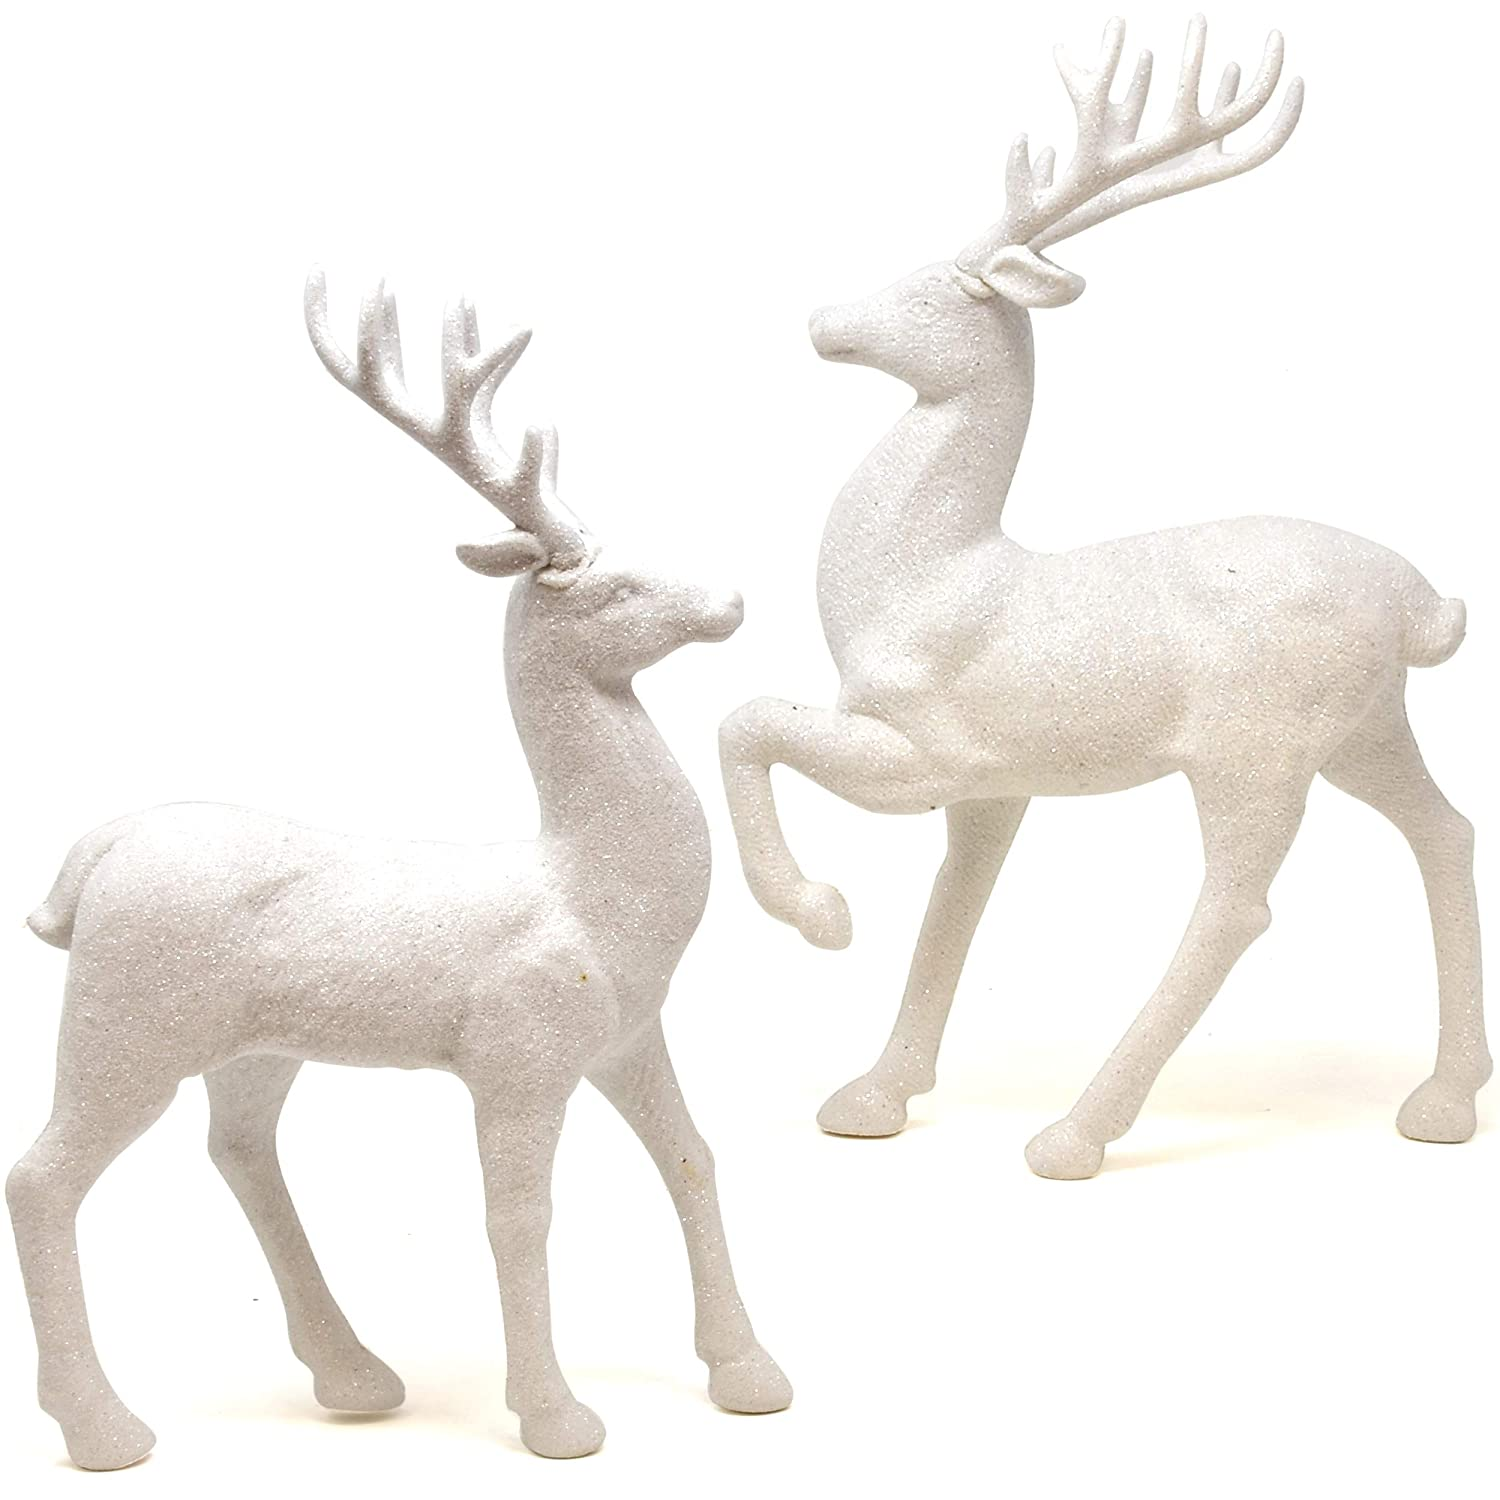 Gift Boutique 2 Holiday Reindeer Figures 12.5 Inches Silver Glitter Table Decorations for Dinner Party Coffee Merry Christmas Deer Decor Happy Holidays Centerpiece